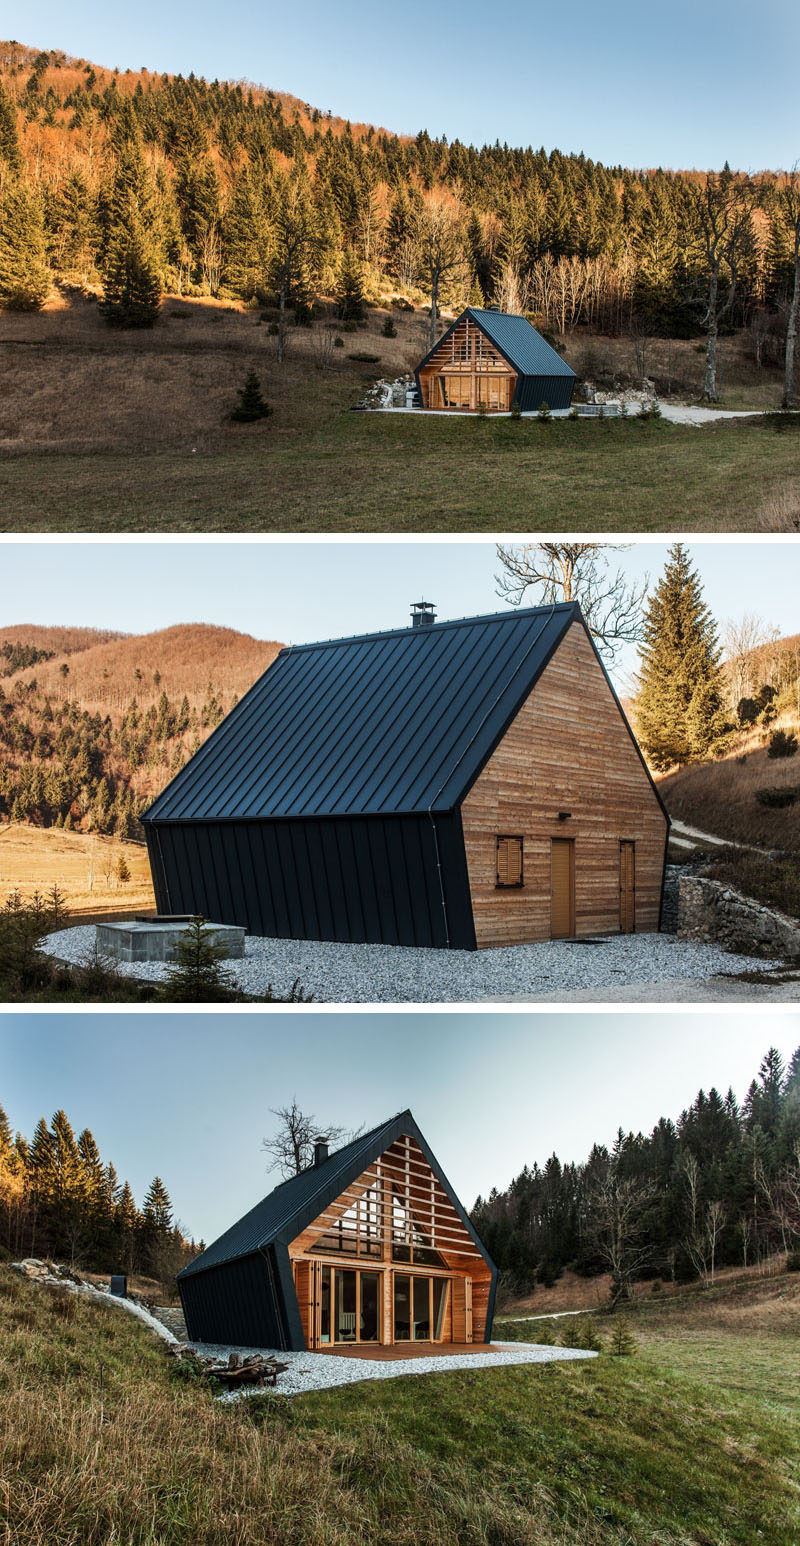 Studio pikaplus have designed this small two bedroom house surrounded by a forest in slovenia that has an exterior of black metal siding and a softer light